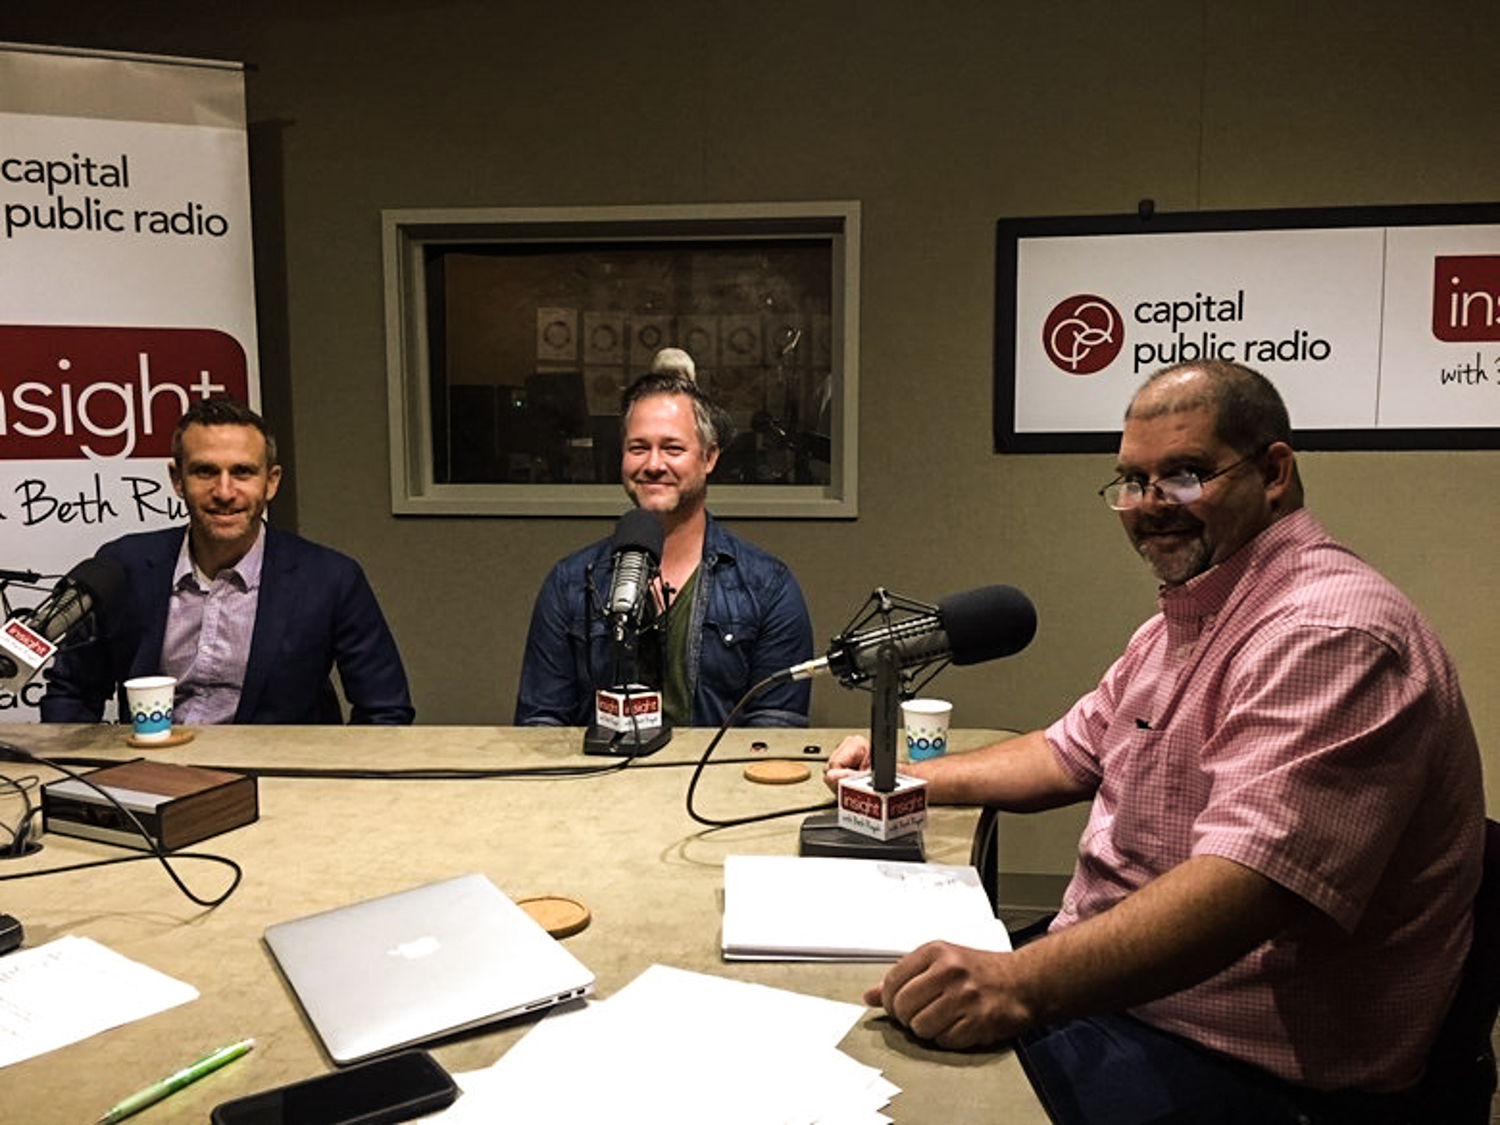 SRFC COO Ben Gumpert (left), World Relief Sacramento spokesman Micah Albert (center) and World Relief Sacramento Director Kerry Ham (right) on Capital Public Radio's Insight with Beth Ruyak.